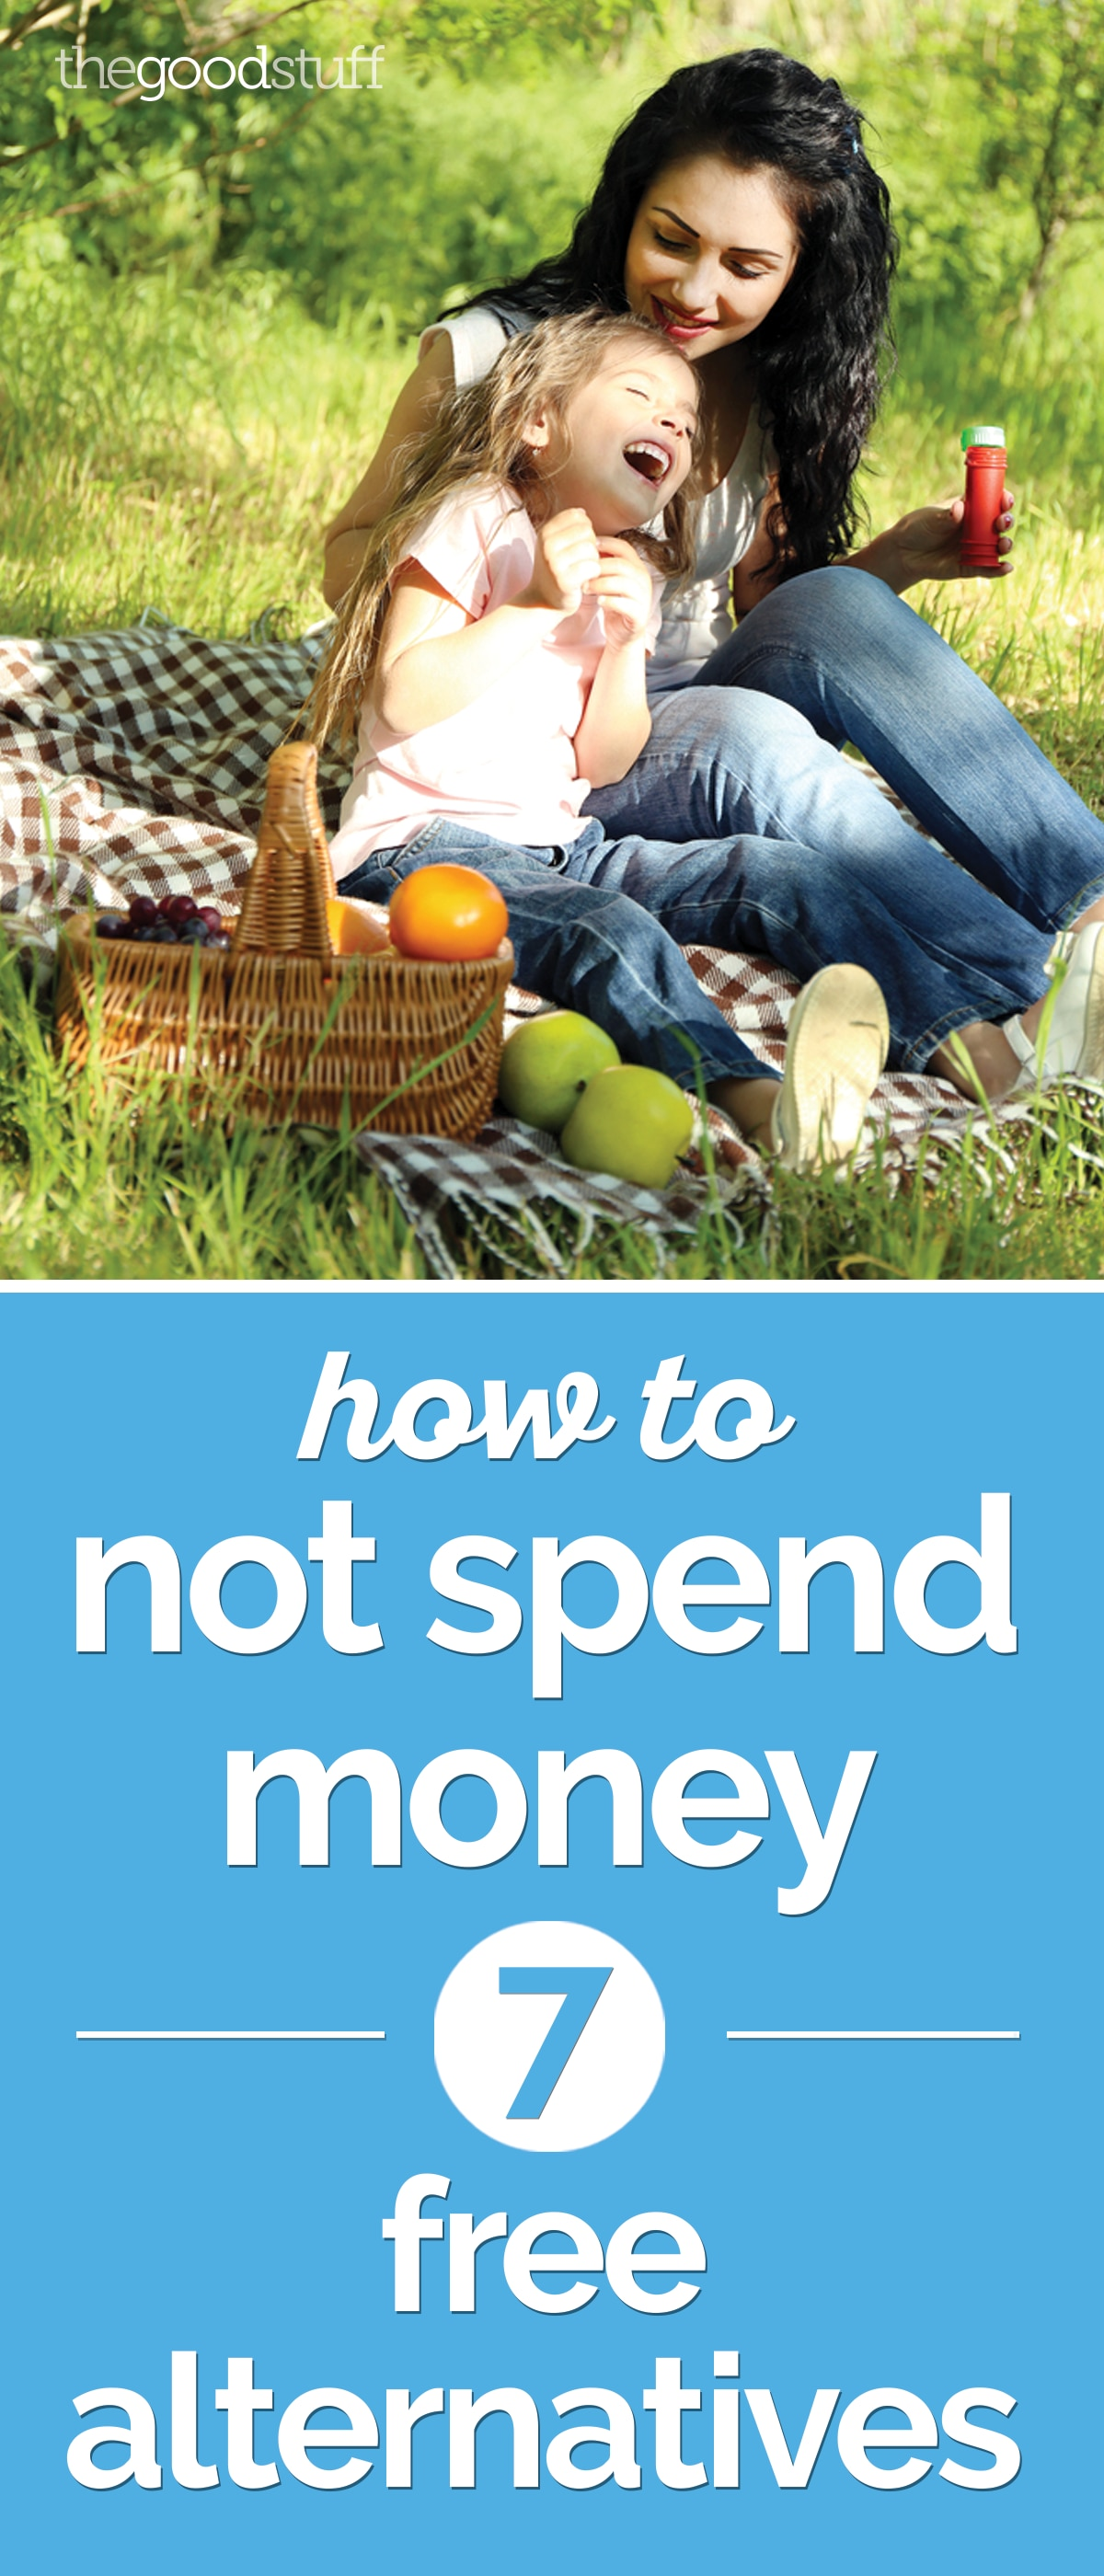 How to Not Spend Money: 7 Free Alternatives | thegoodstuff